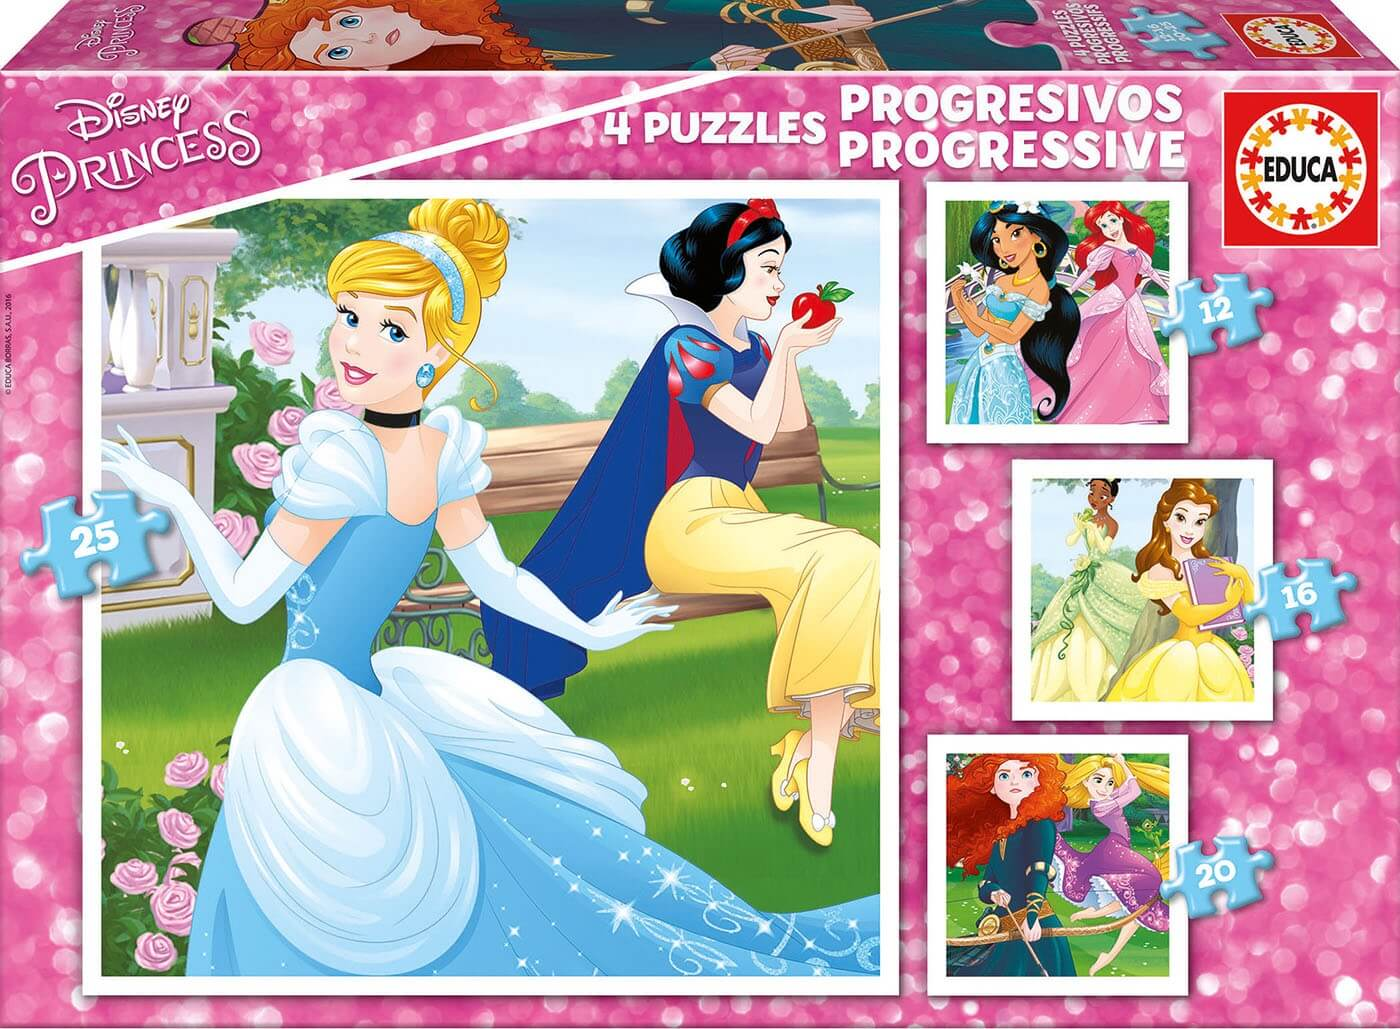 Progresivo 12-16-20-25 Princesas Disney